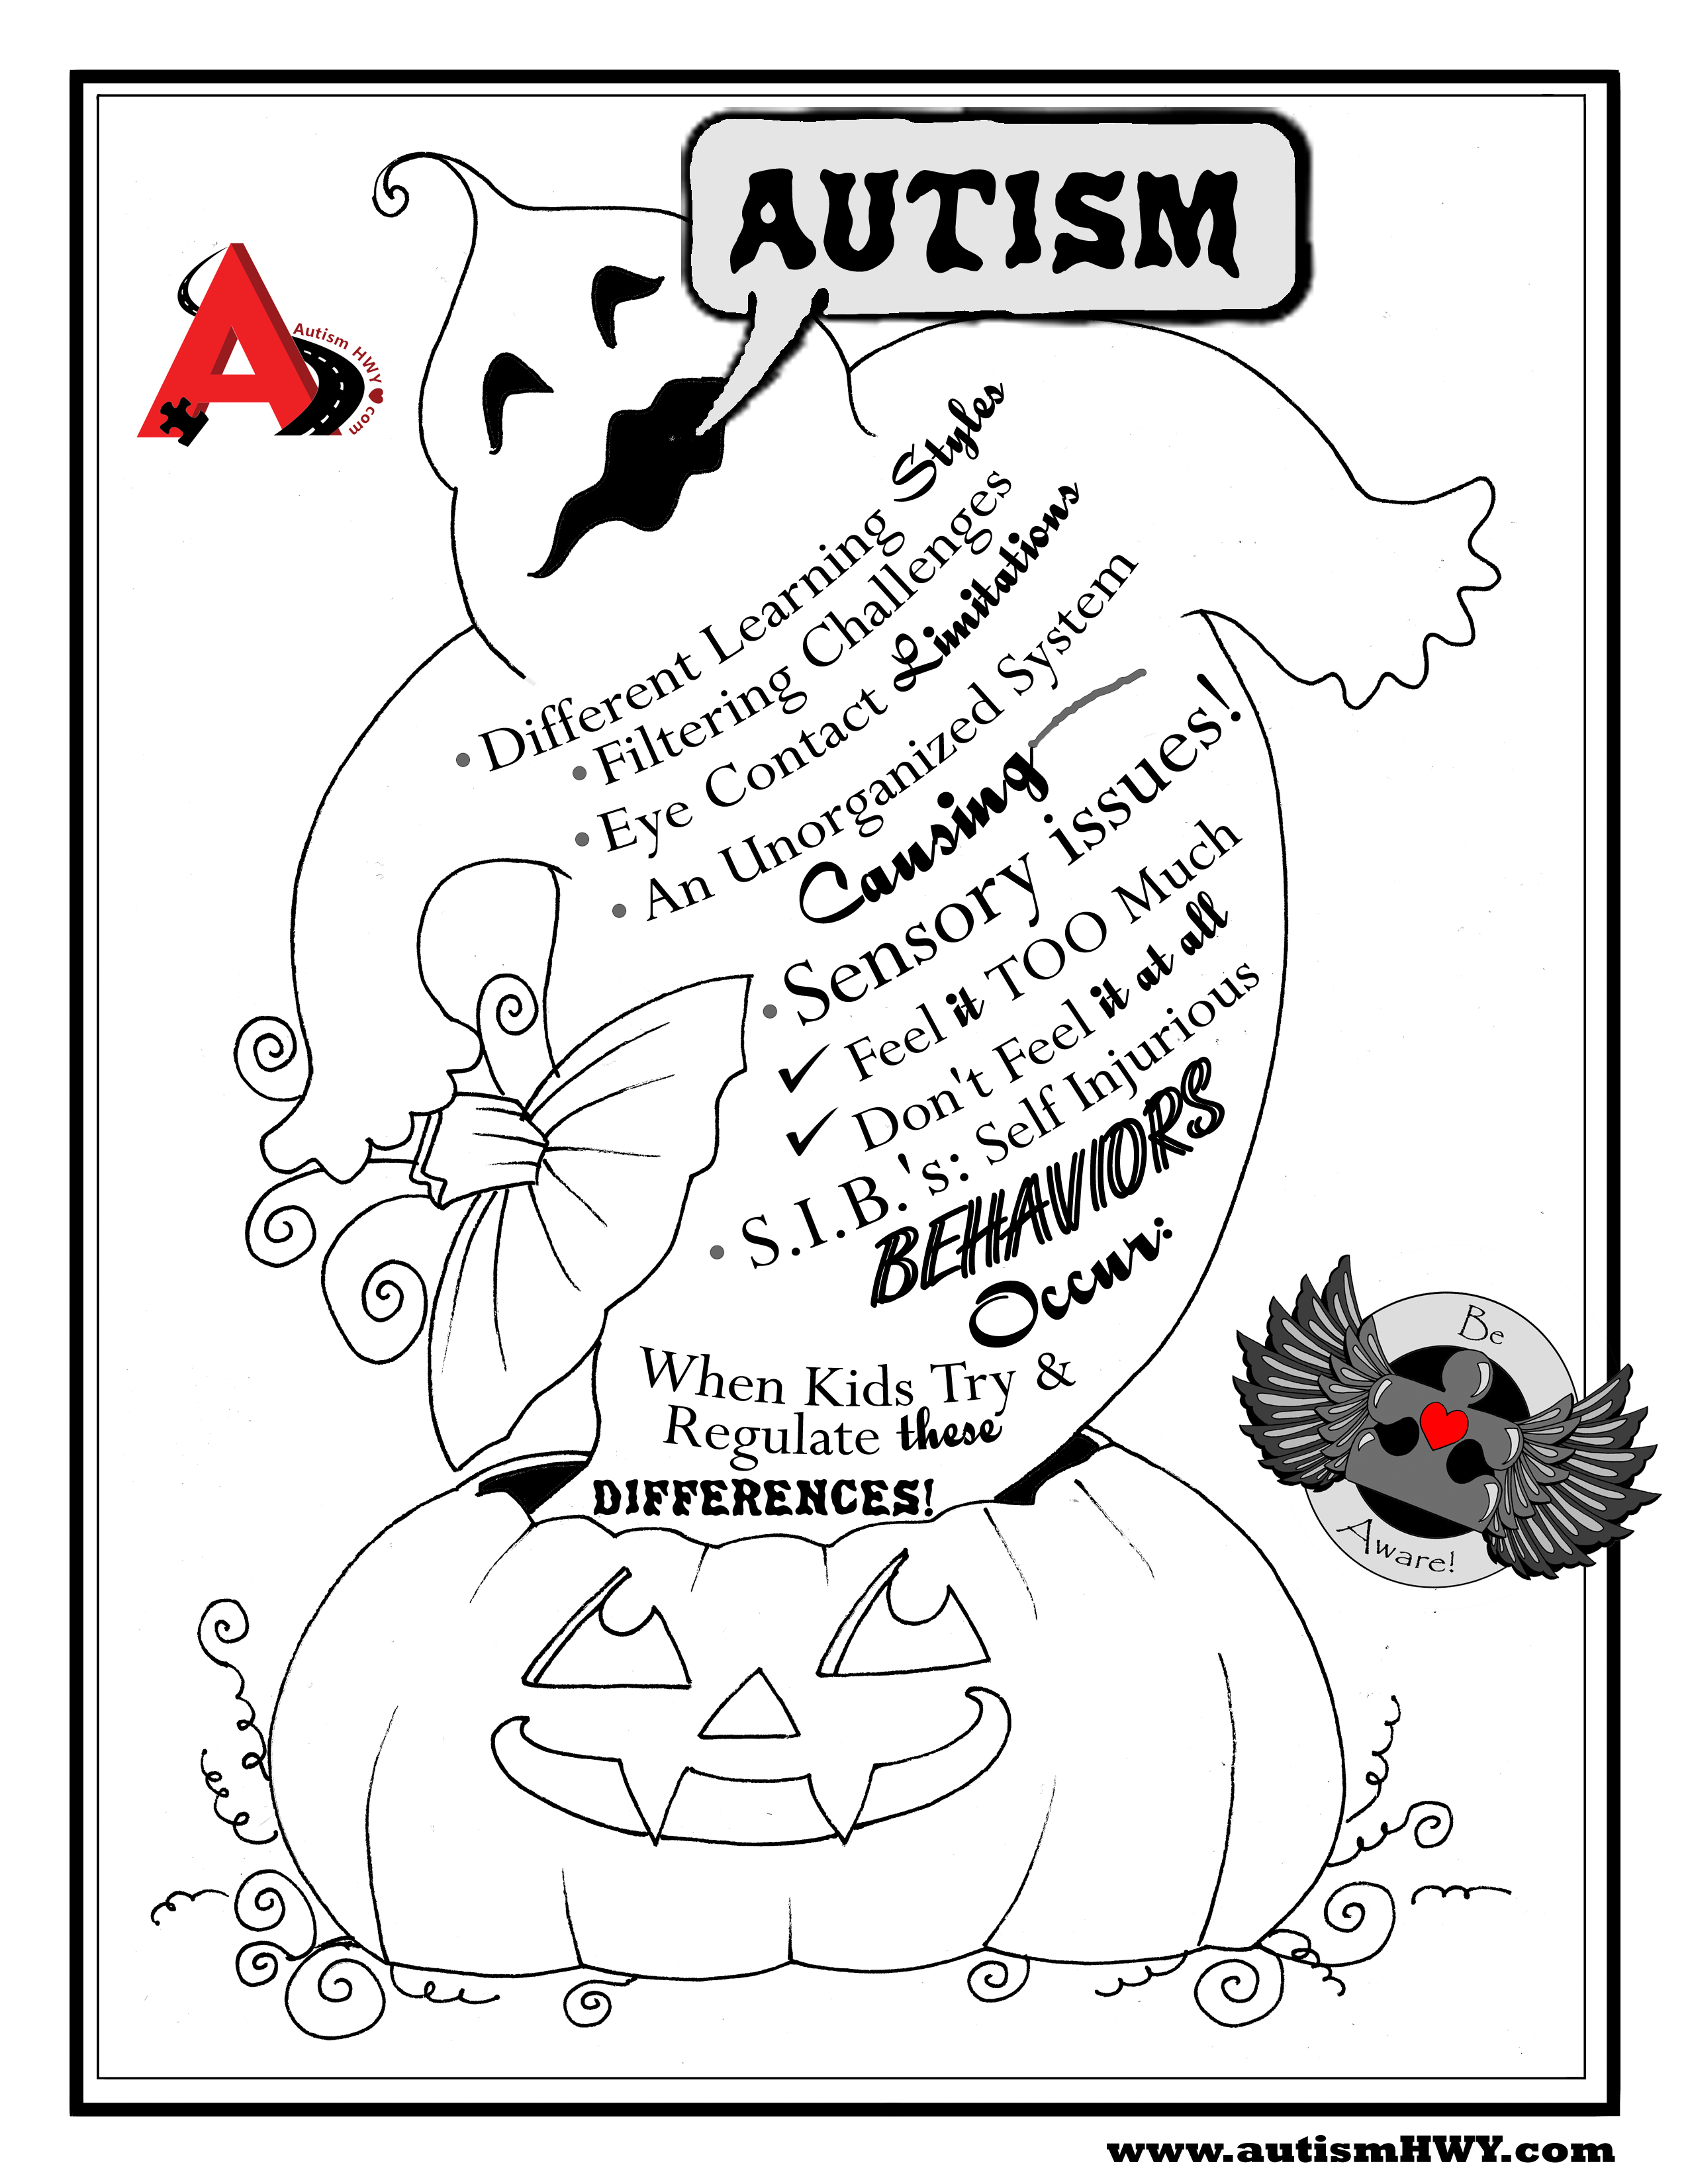 autism awareness month coloring pages - photo#20